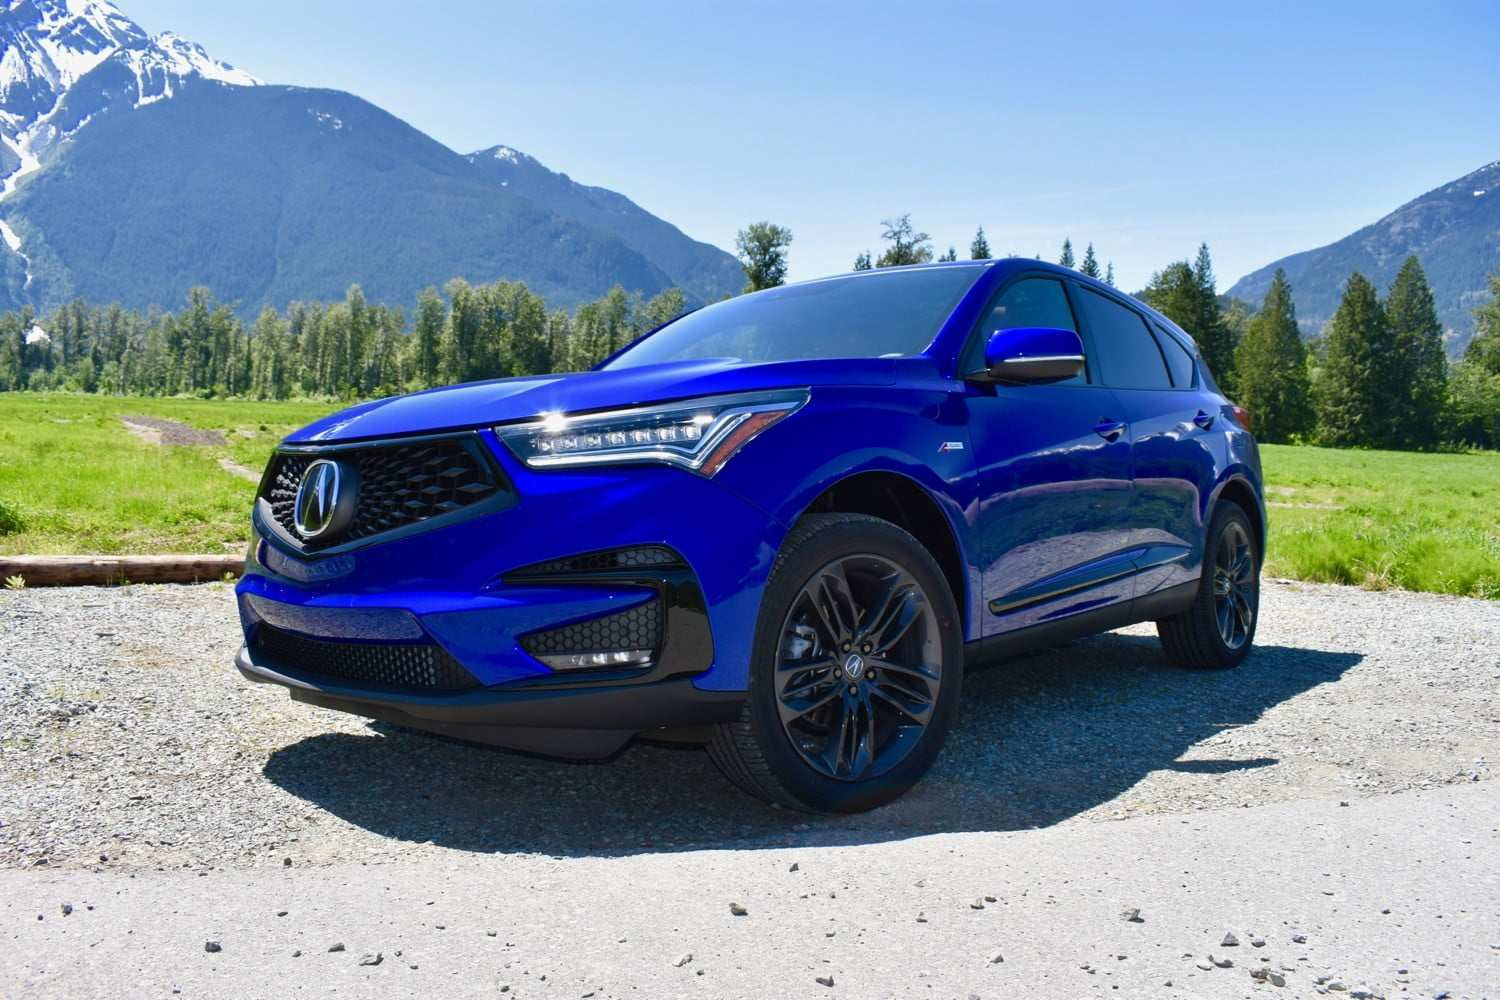 14 Concept of Difference Between 2019 And 2020 Acura Rdx Model by Difference Between 2019 And 2020 Acura Rdx